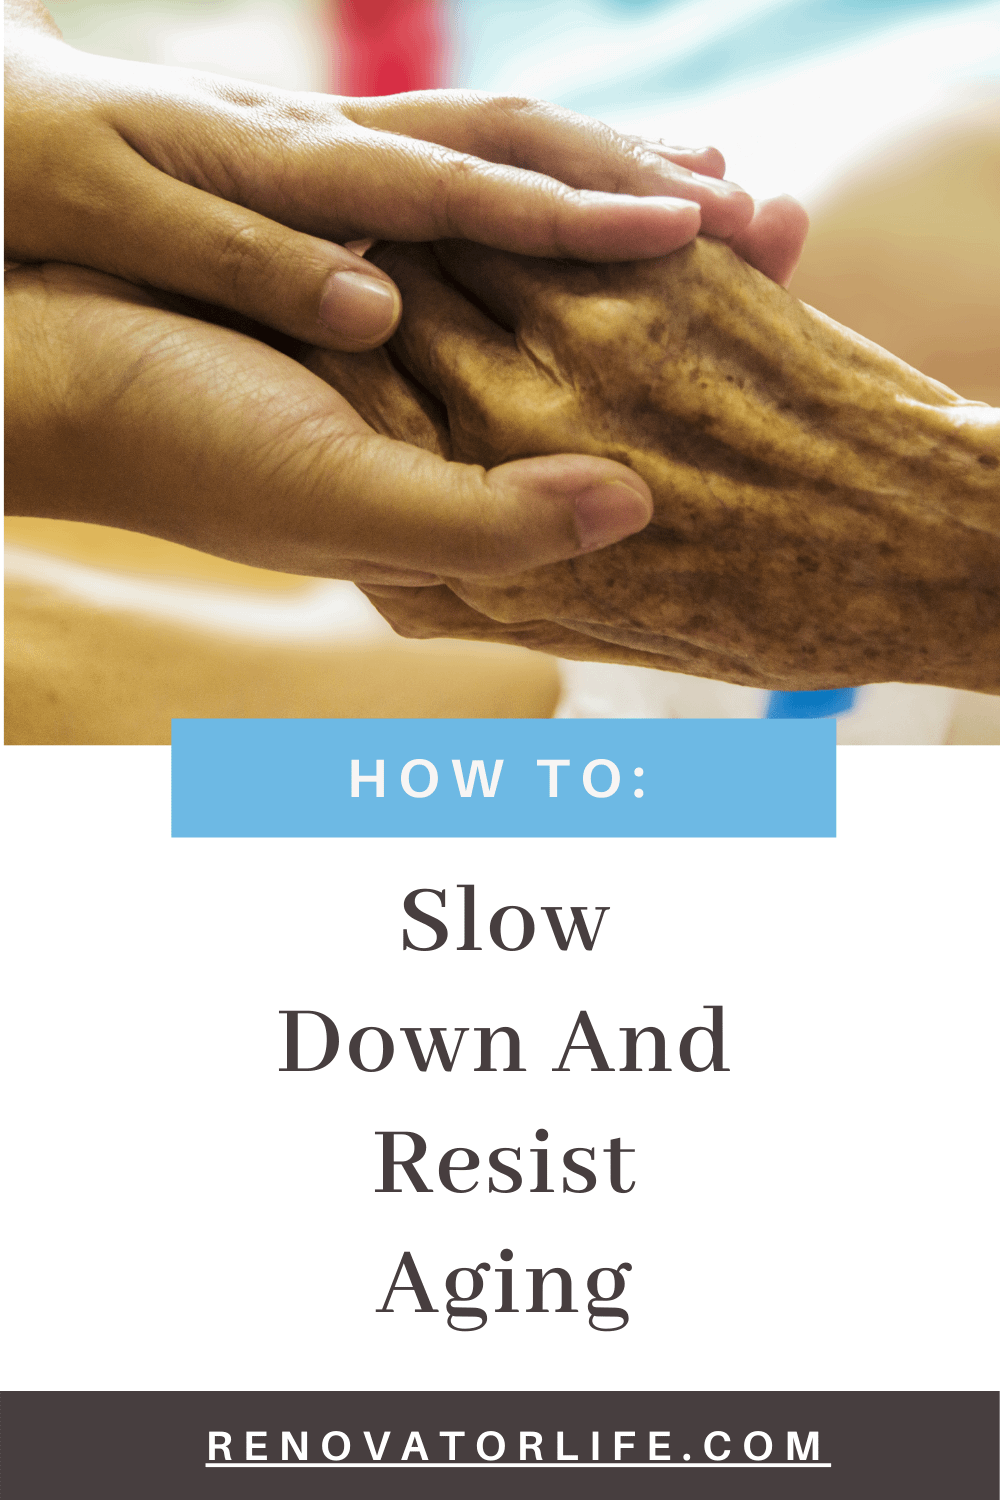 Slow down and resist aging